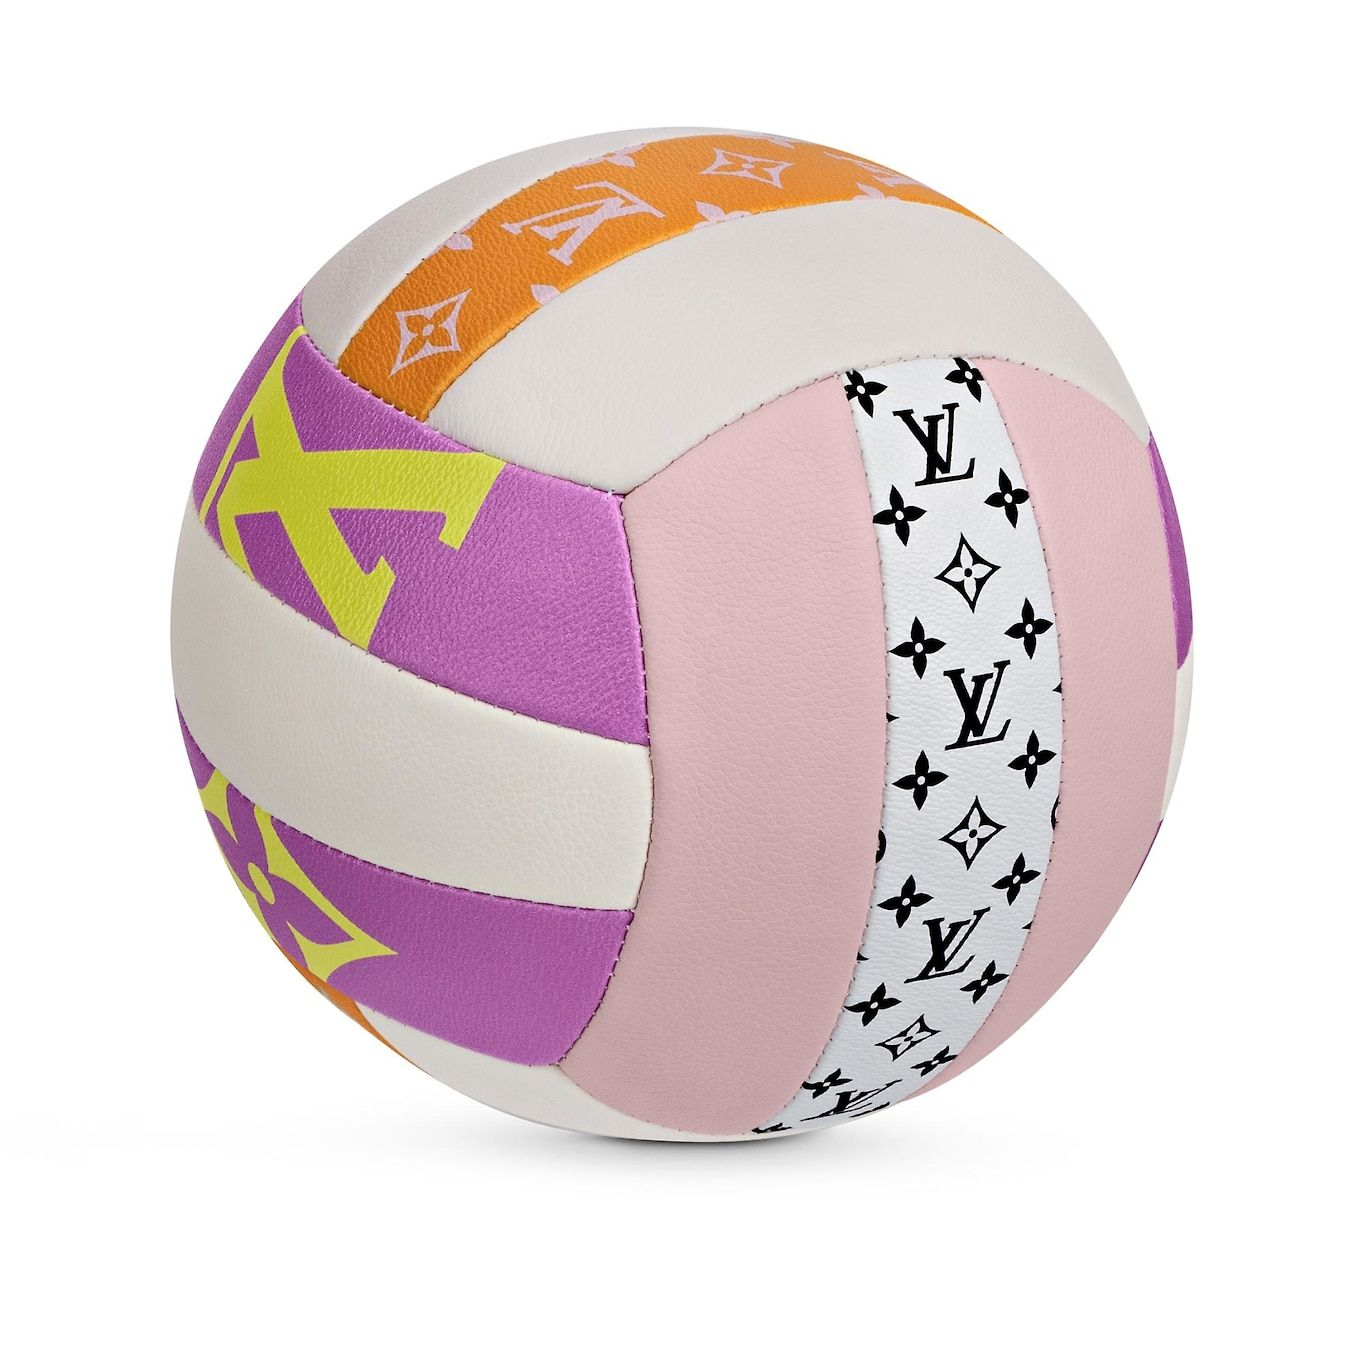 Products By Louis Vuitton Monogram Giant Volley Ball In 2020 Volleyball Volleyball Workouts Volley